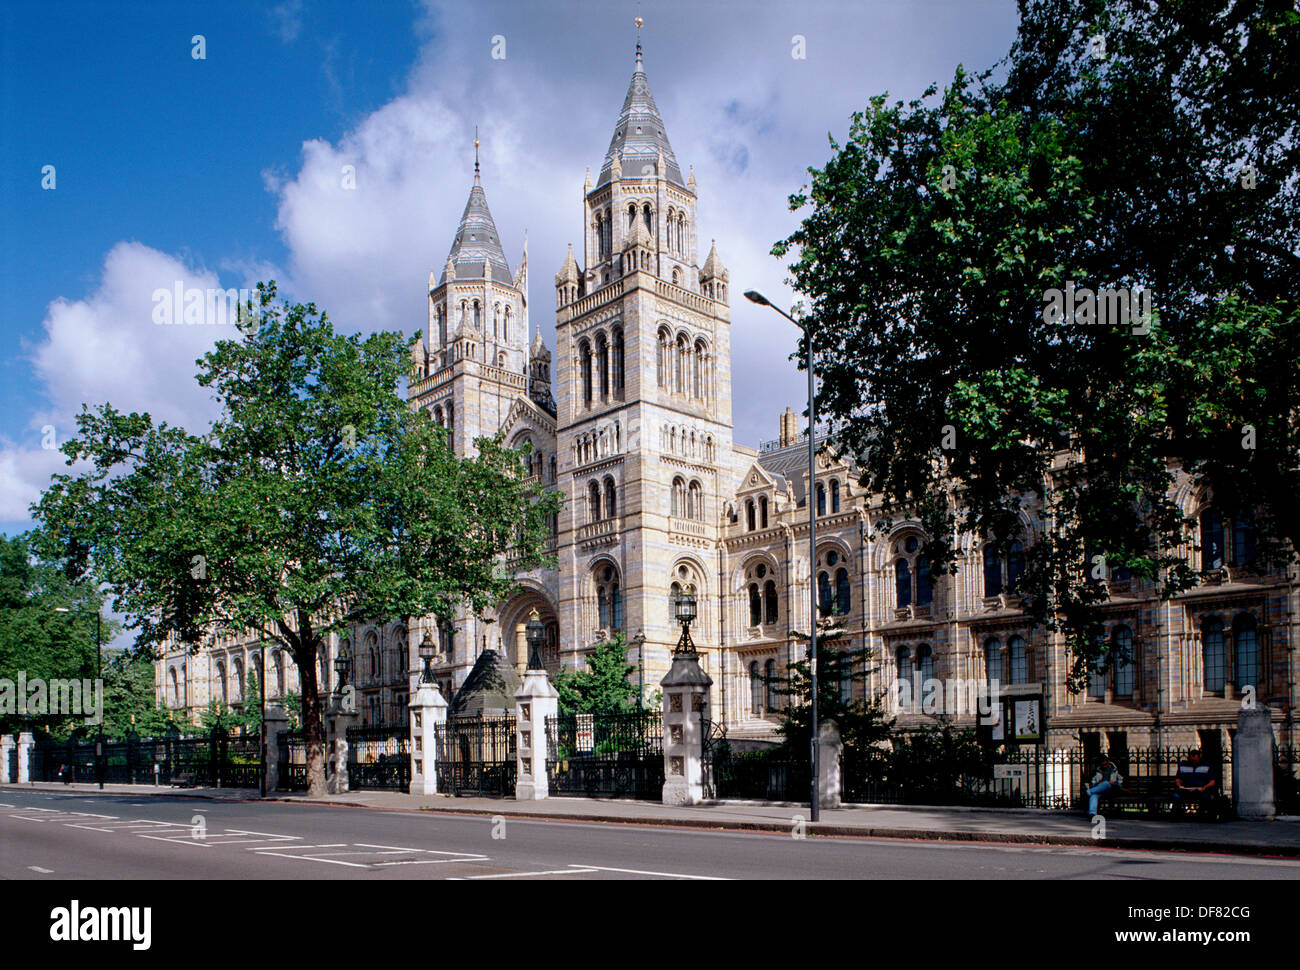 Museum of Natural History. London. England - Stock Image